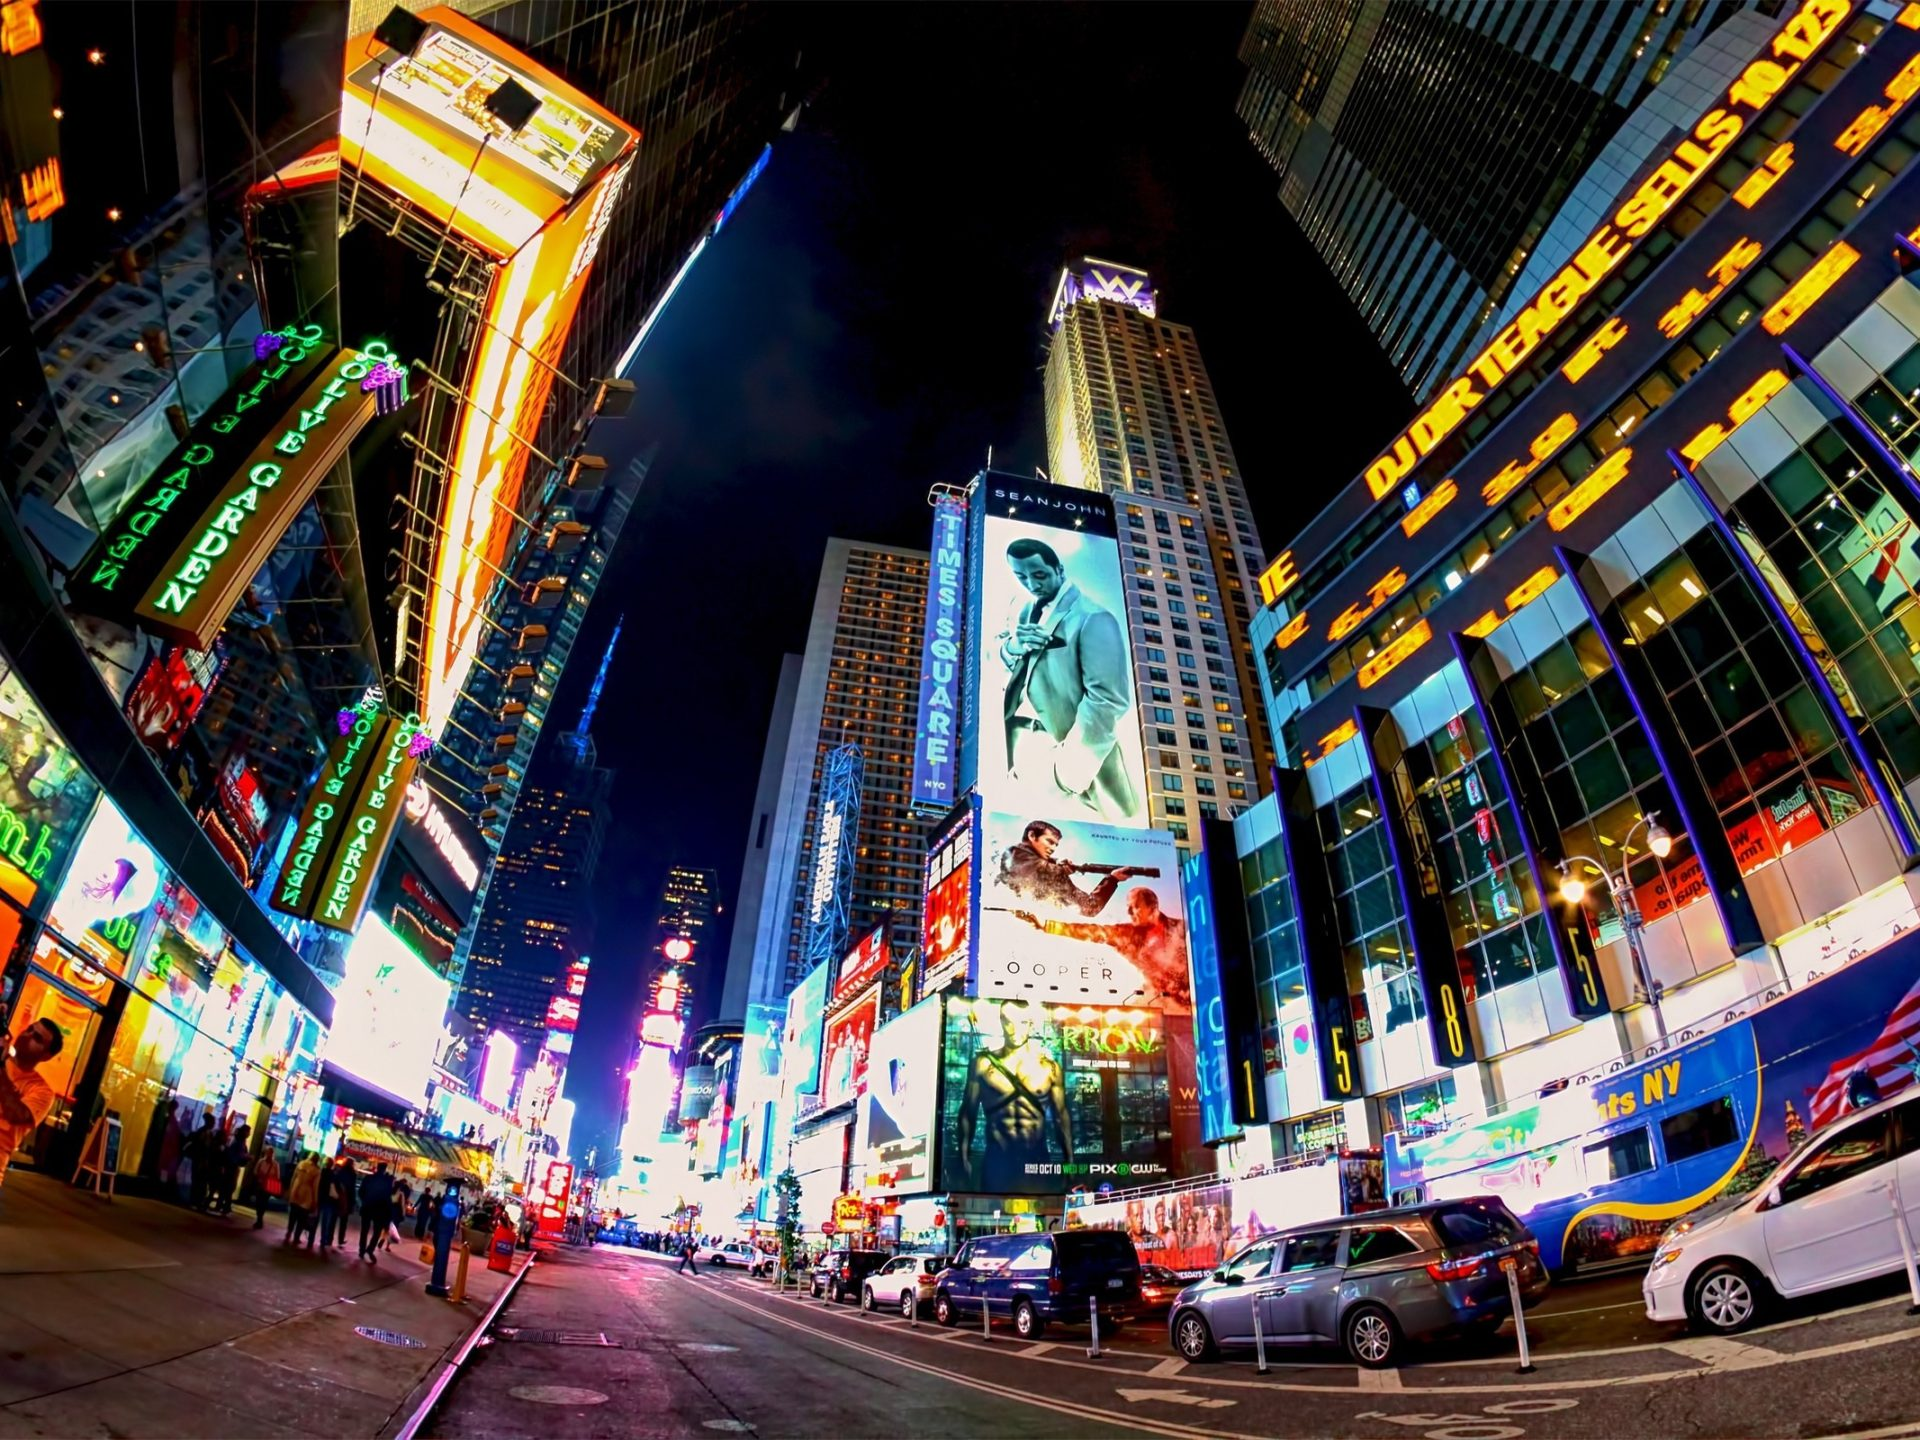 New York City Wallpaper Iphone X Times Square At Night 256890 Wallpapers13 Com